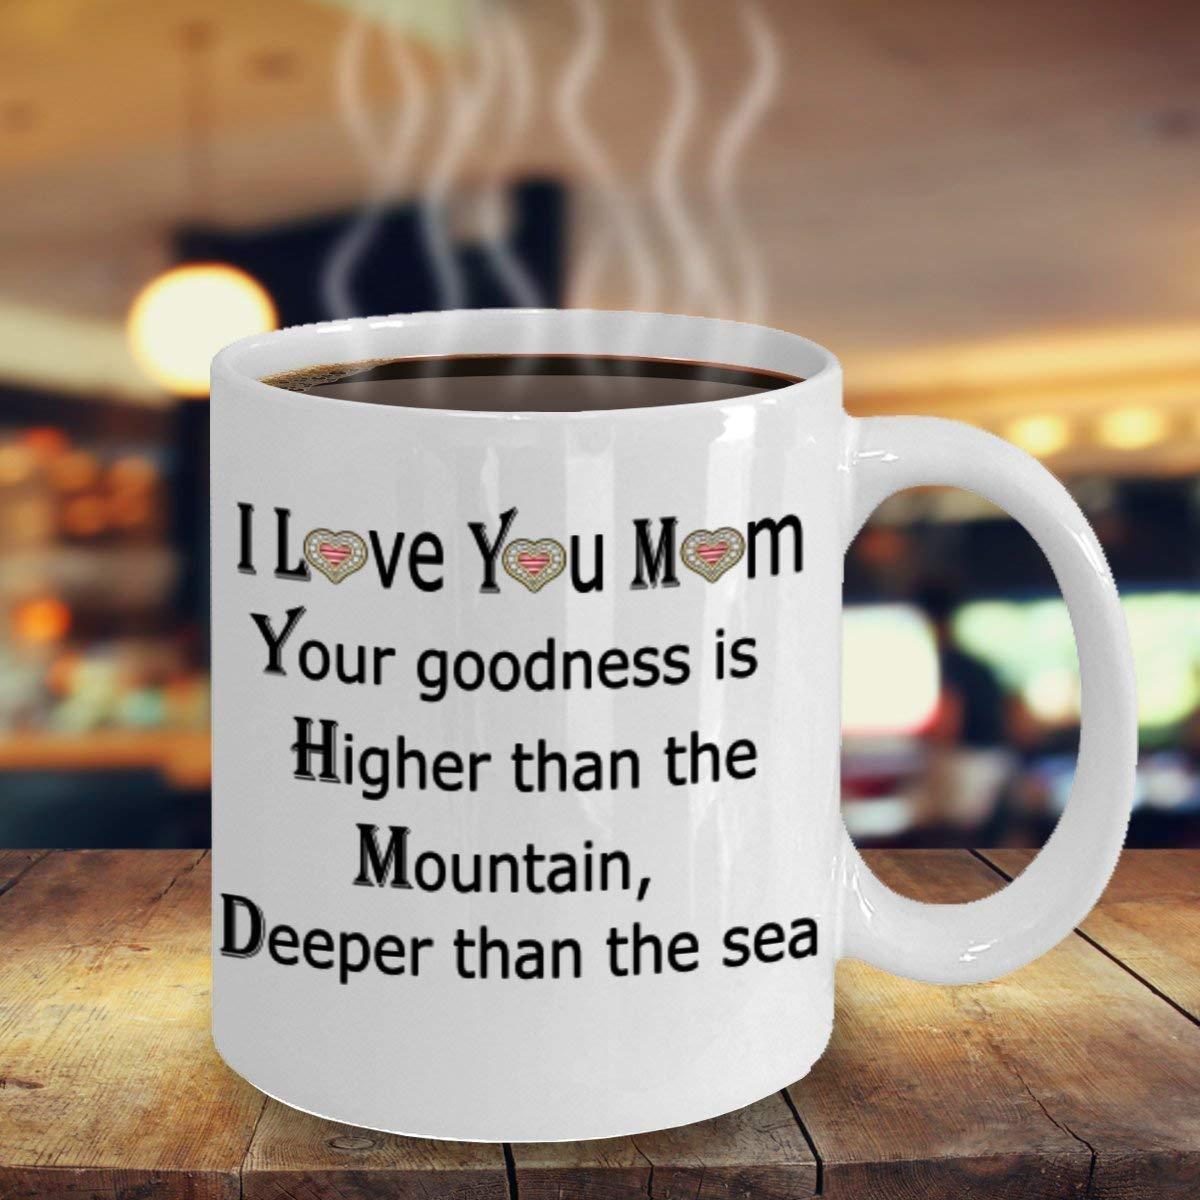 Mother's Day Mugs | Gifts for Mom | Mother's Day Gifts | Mother Day Presents | Gift ideas for Mom | Best Mom Gifts - 11oz Ceramic Coffee Mug